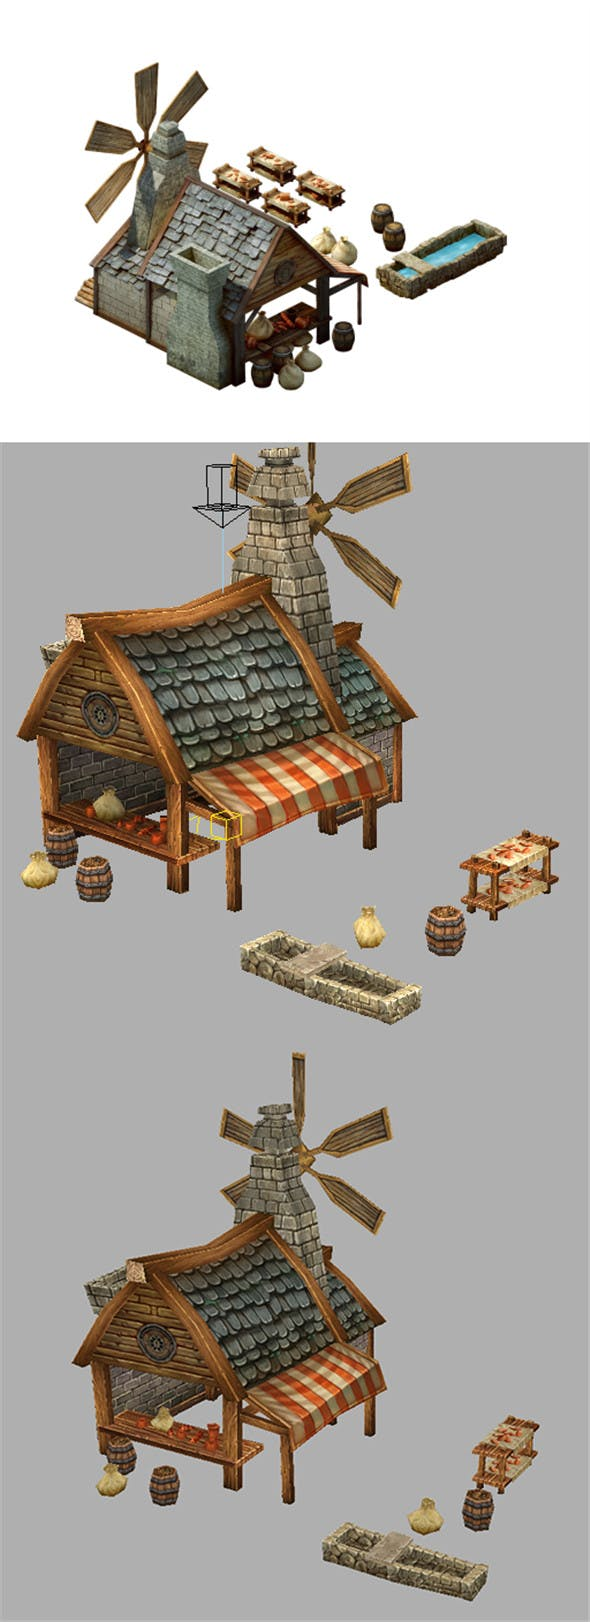 Game Model Arena - Bakery 01 - 3DOcean Item for Sale